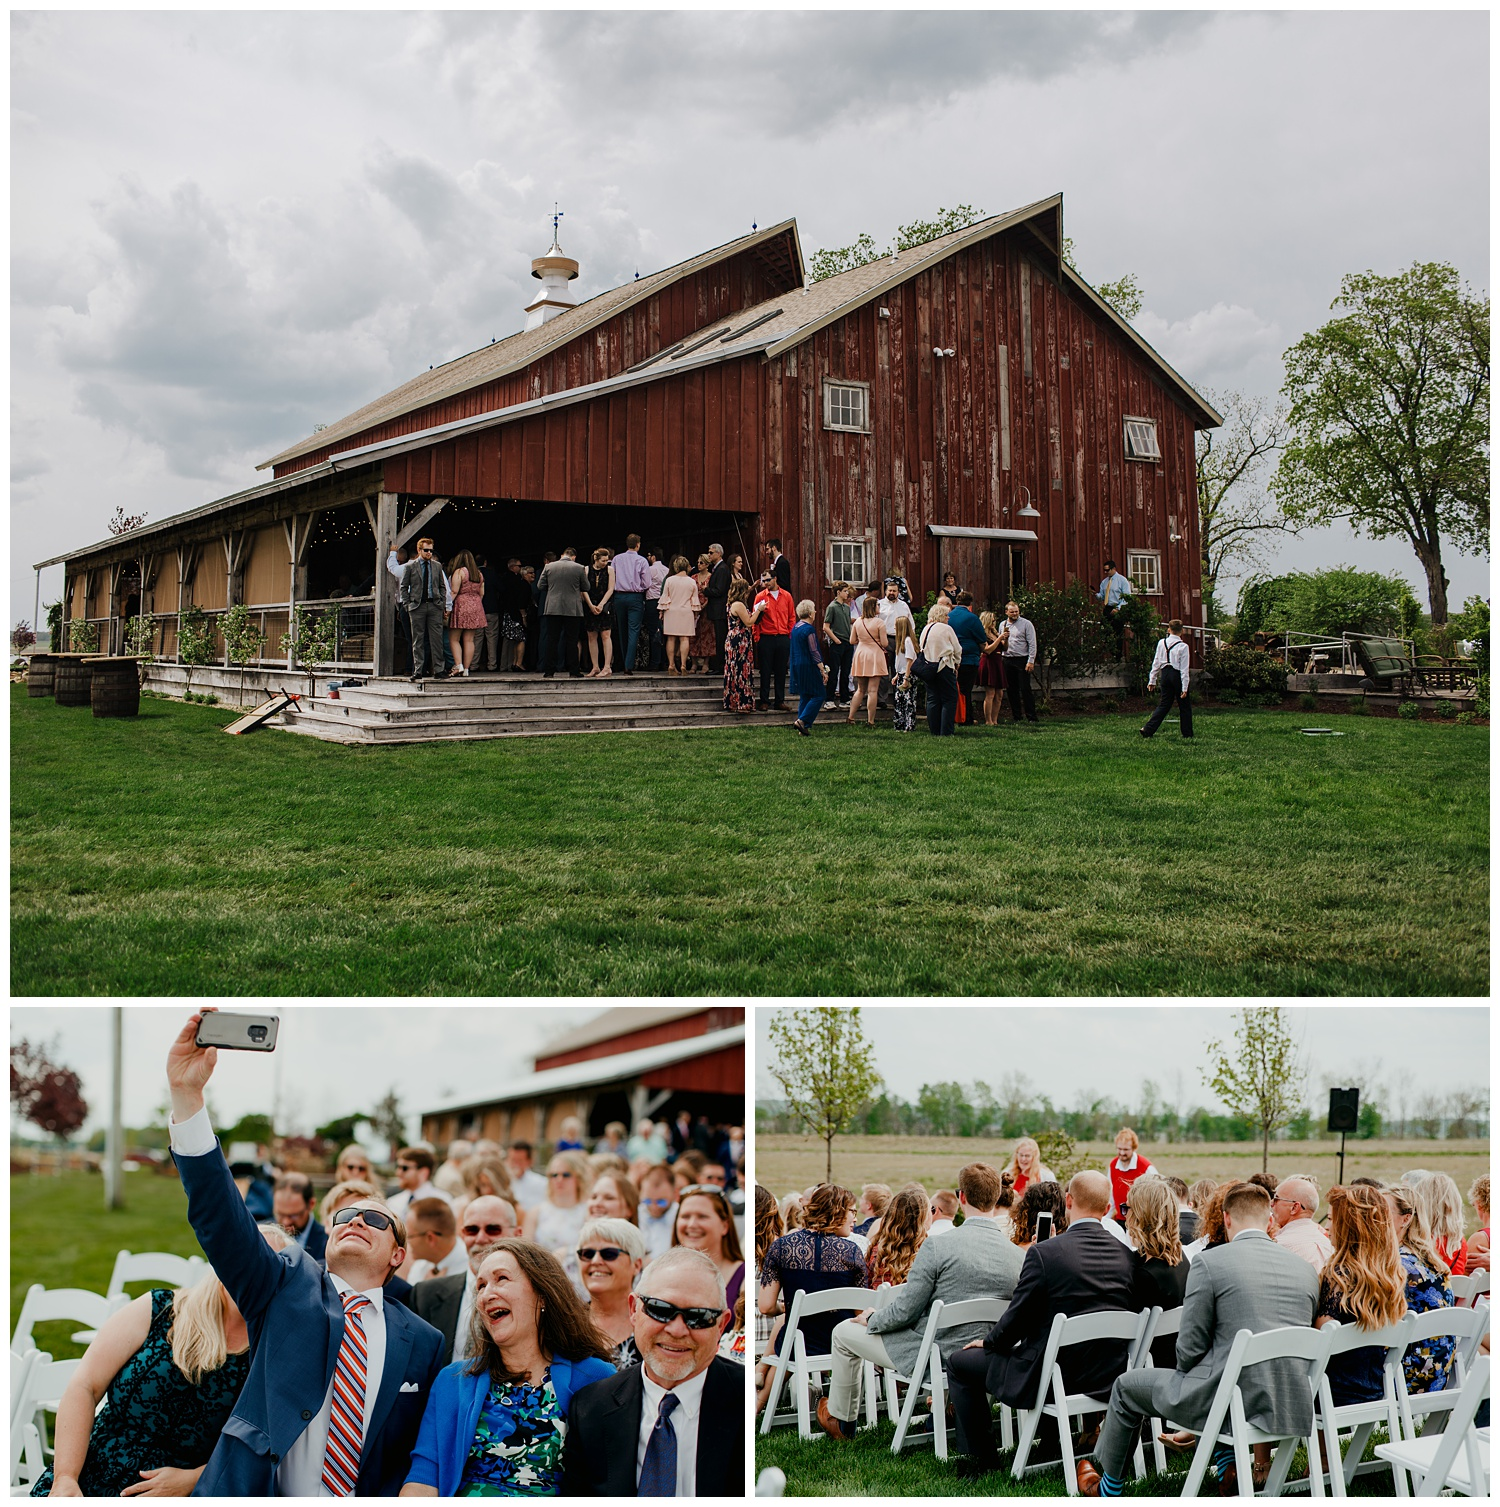 blissfulbarn threeoaks michigan wedding photography journeymandistillery51.jpg